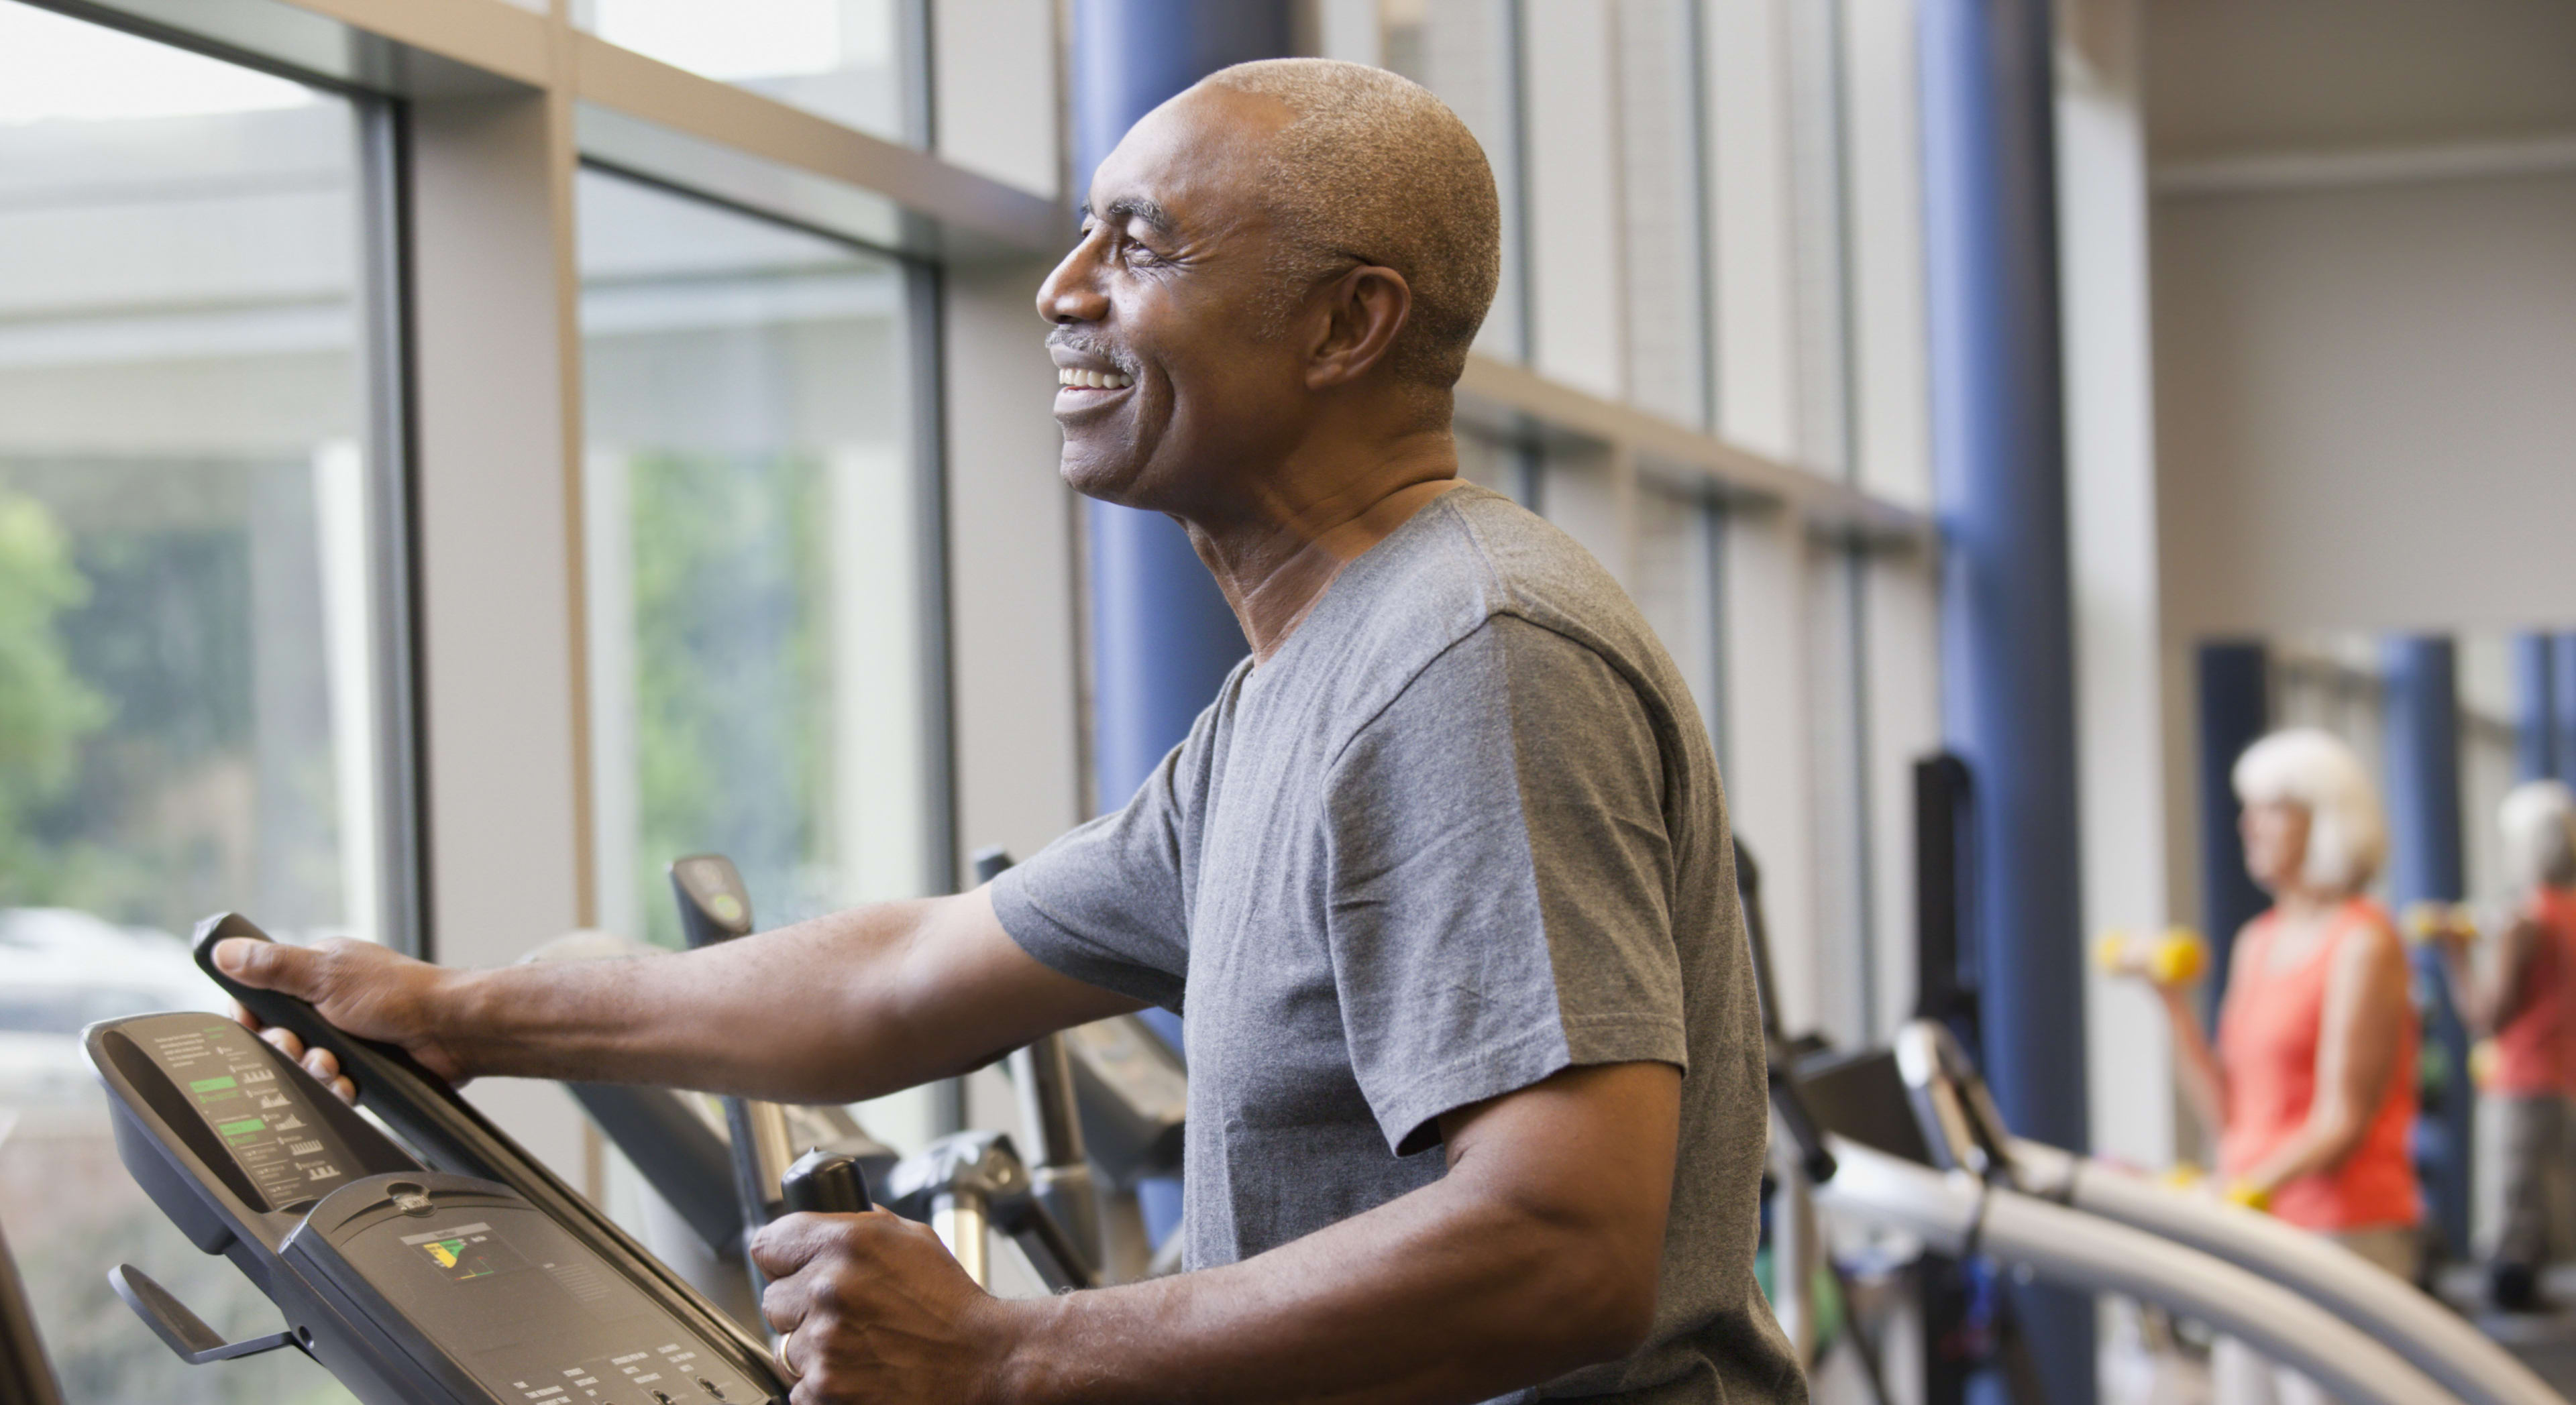 Man exercising on a treadmill at a gym that brightly lit with large windows